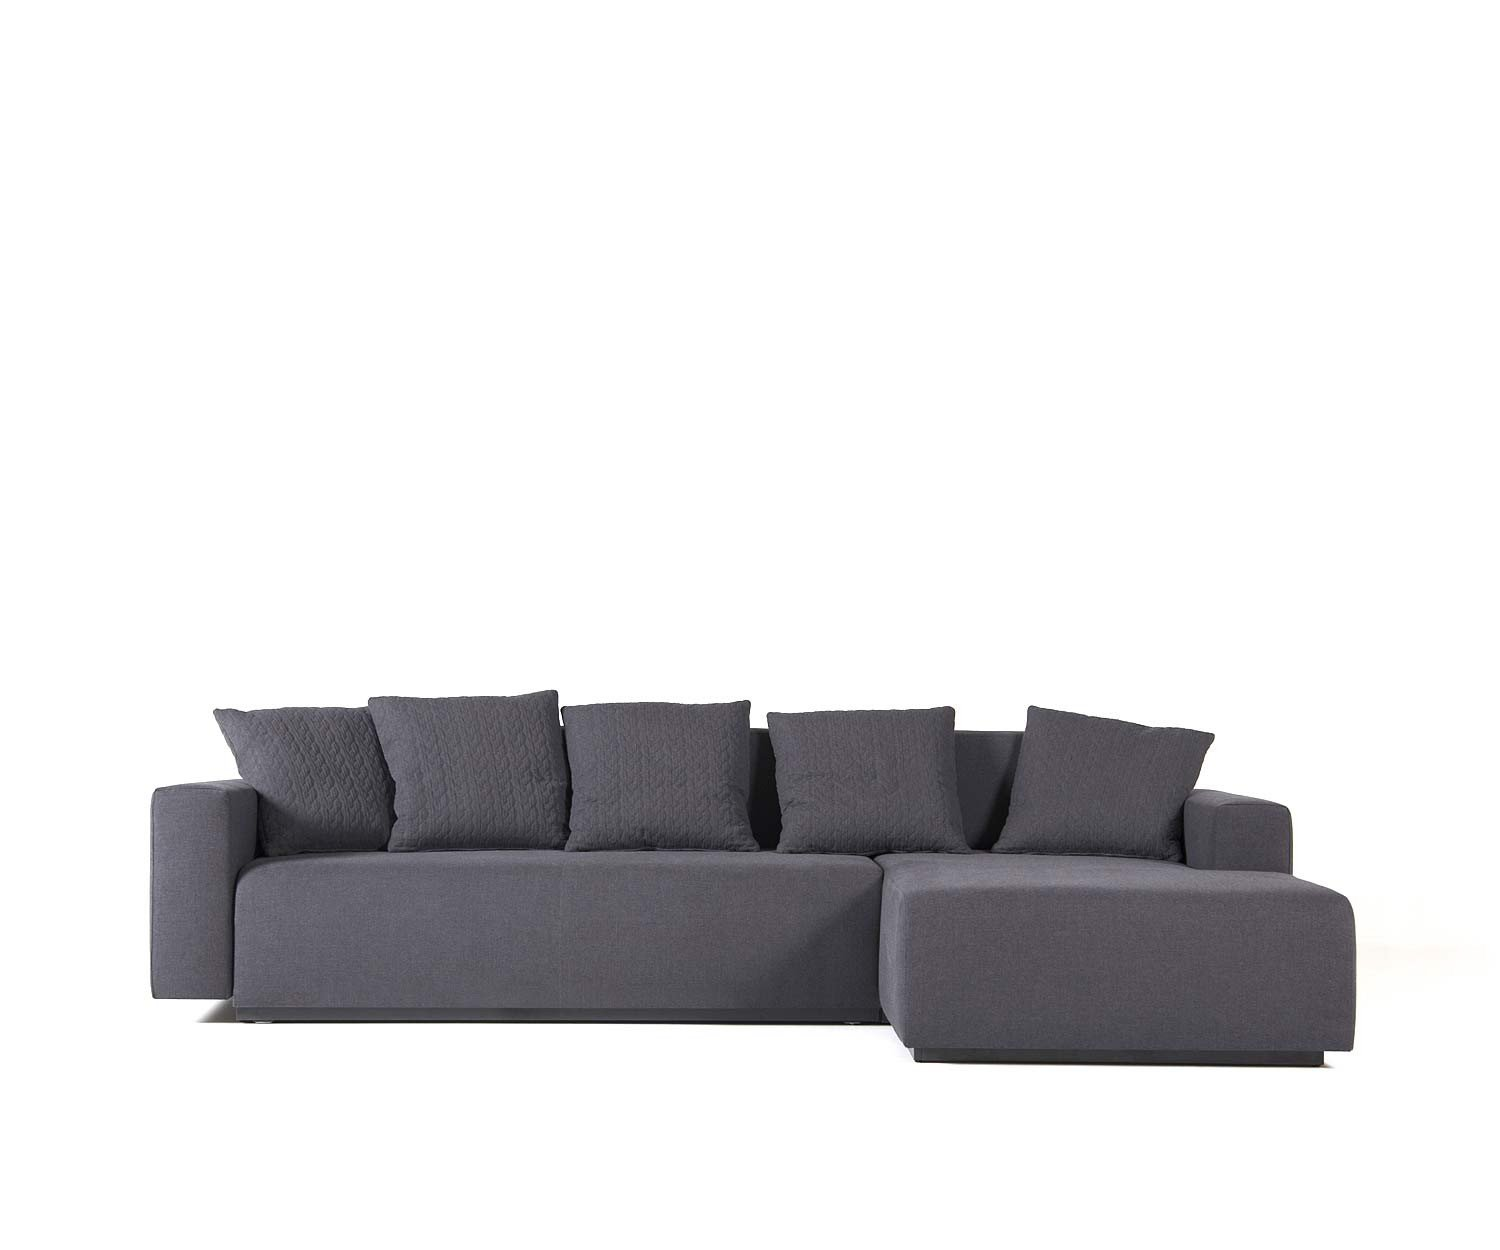 Sofa Bettfunktion Prostoria Bettsofa Combo